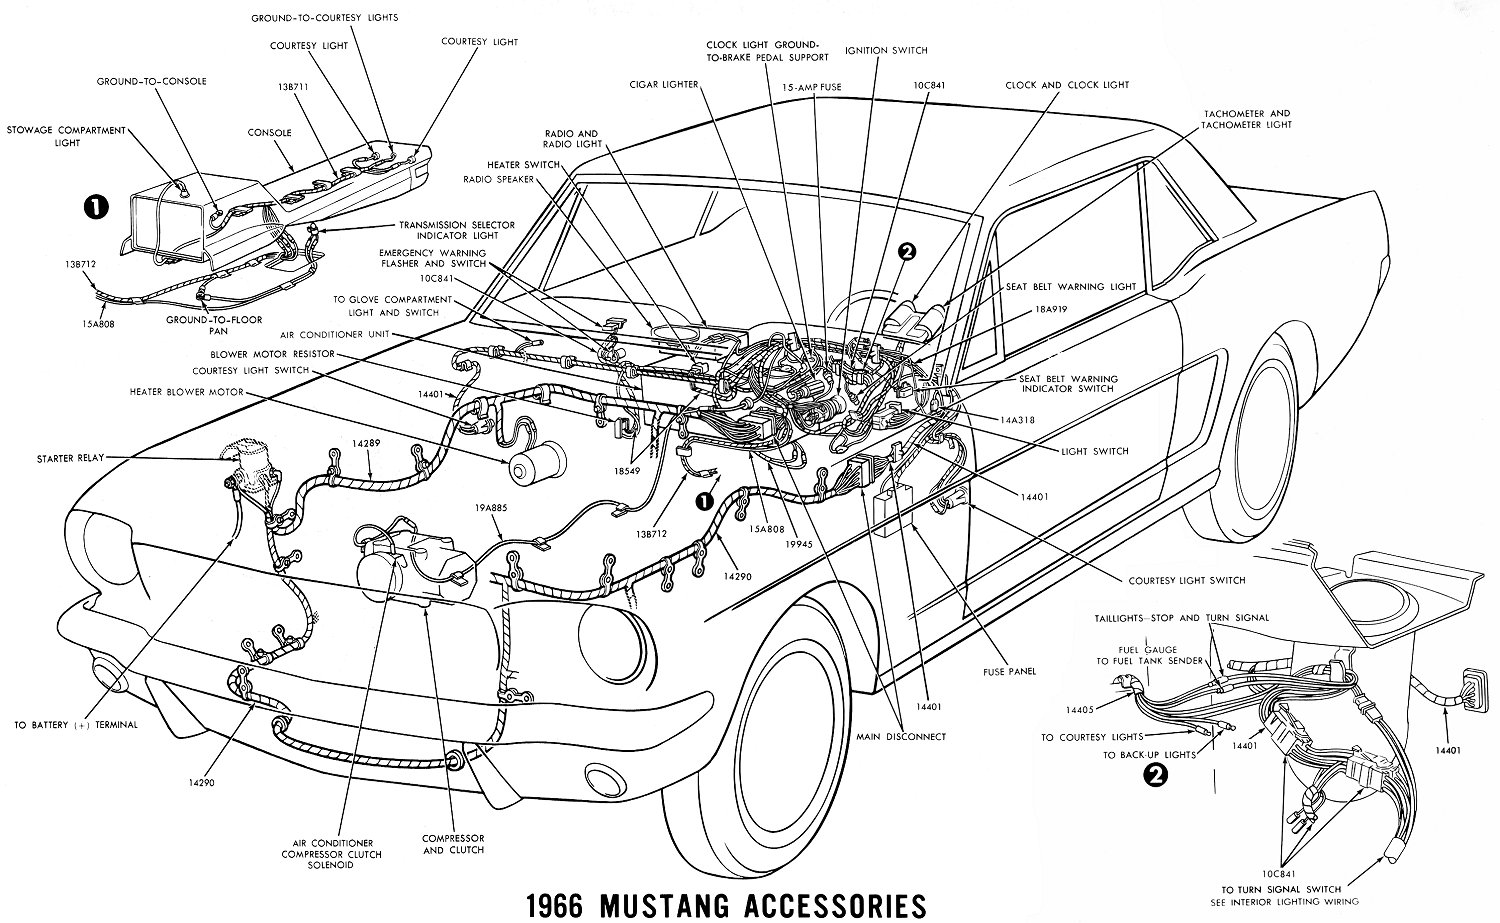 1966 Mustang Light Wiring Opinions About Wiring Diagram \u2022 2009 Ford Mustang  Wiring Diagram Fog Light Wiring Diagram For 1966 Mustang